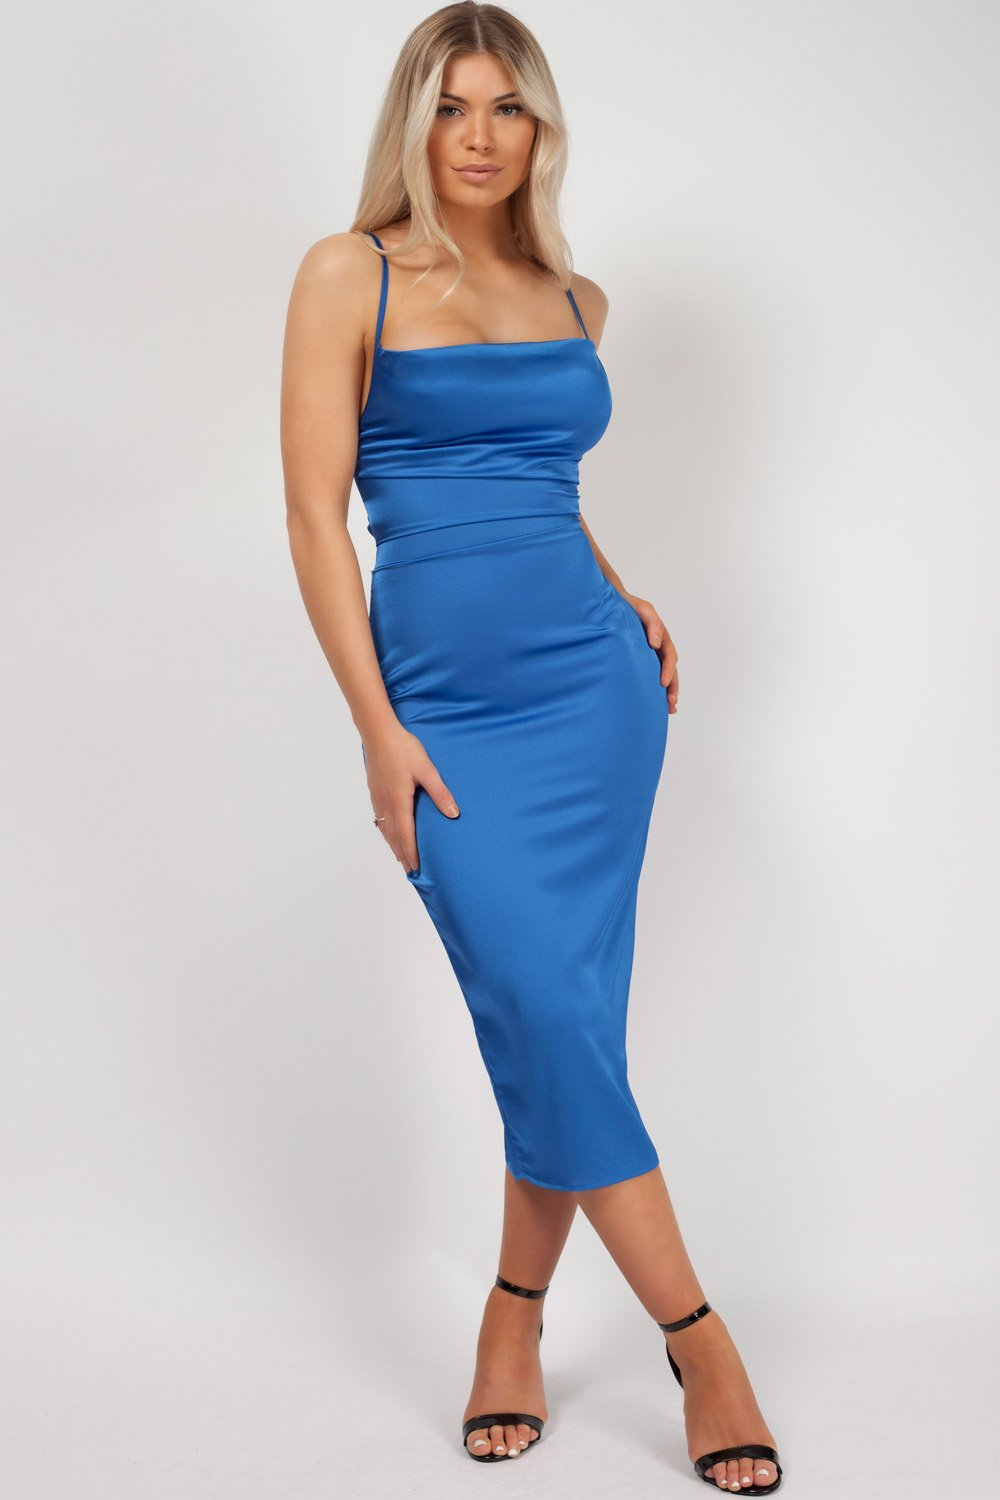 royal blue satin bodycon dress styledup fashion